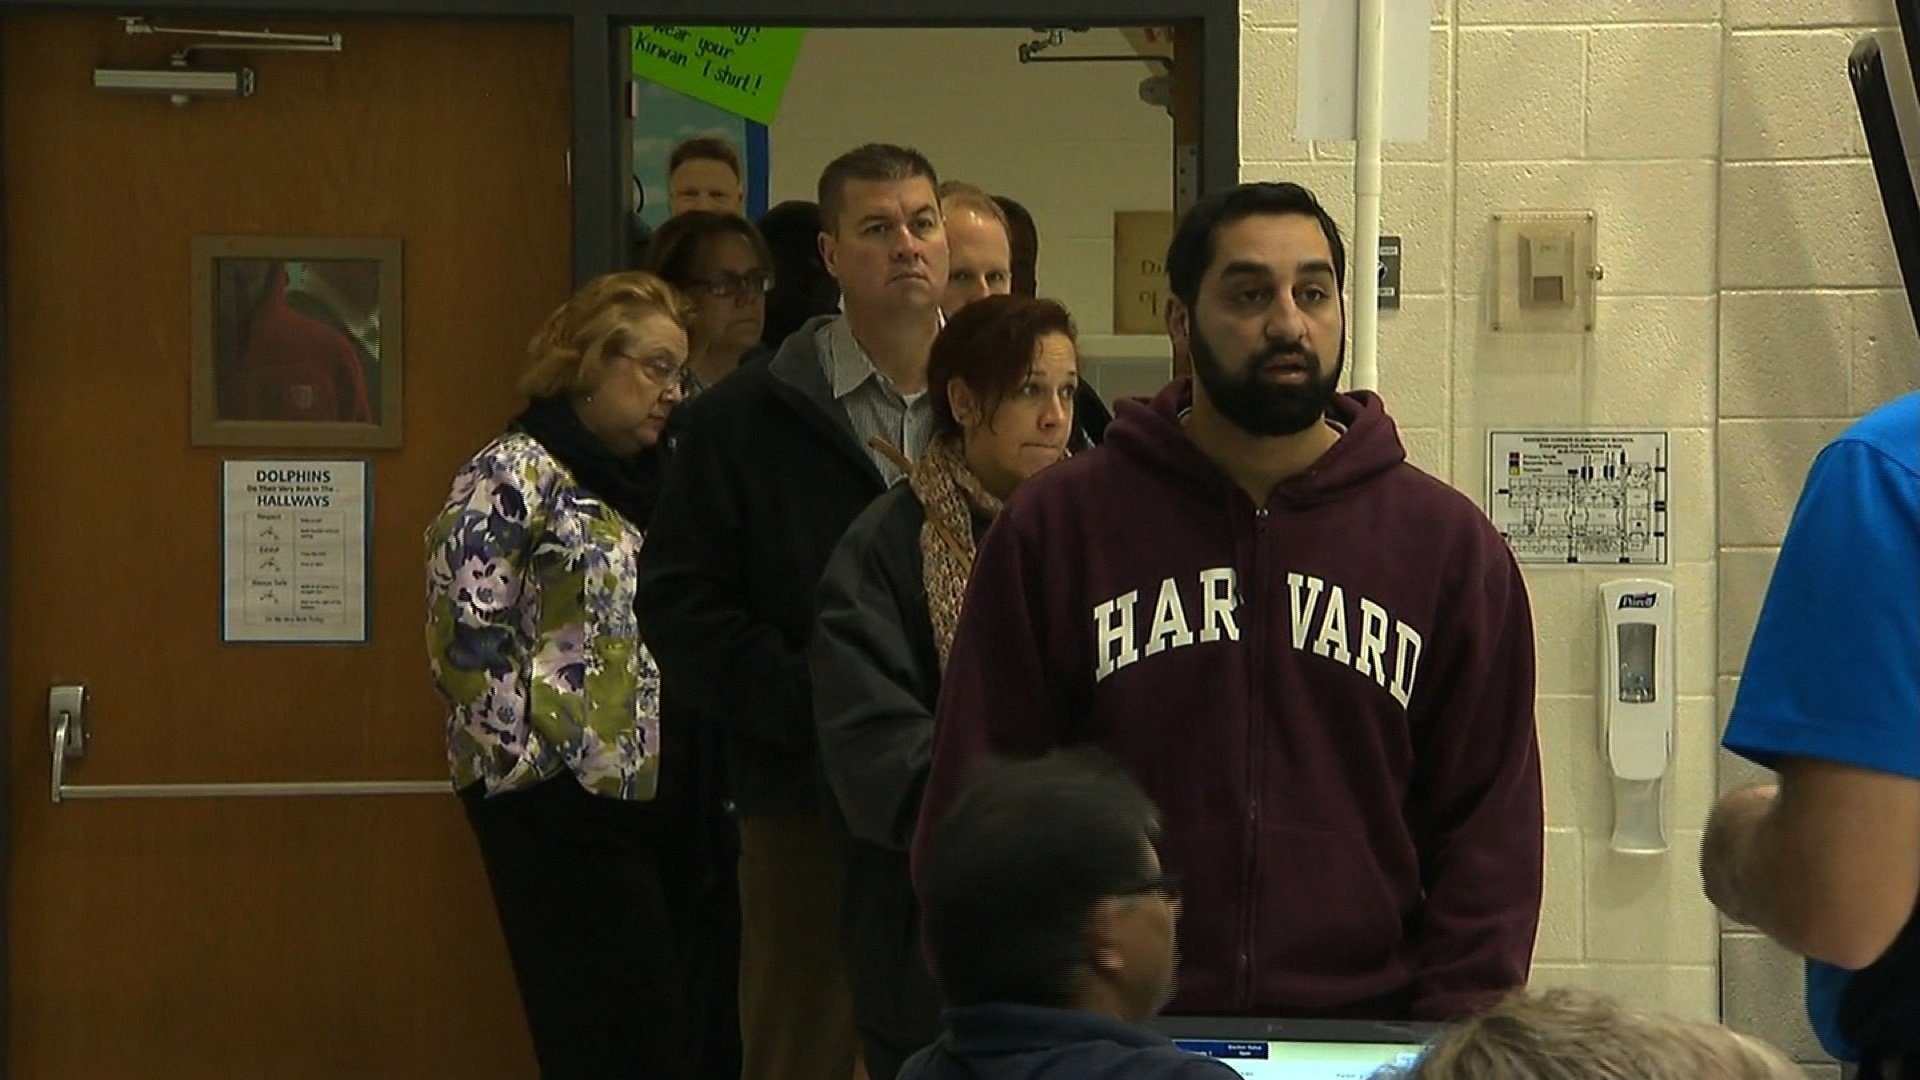 Voting begins after competing claims of fraud, intimidation